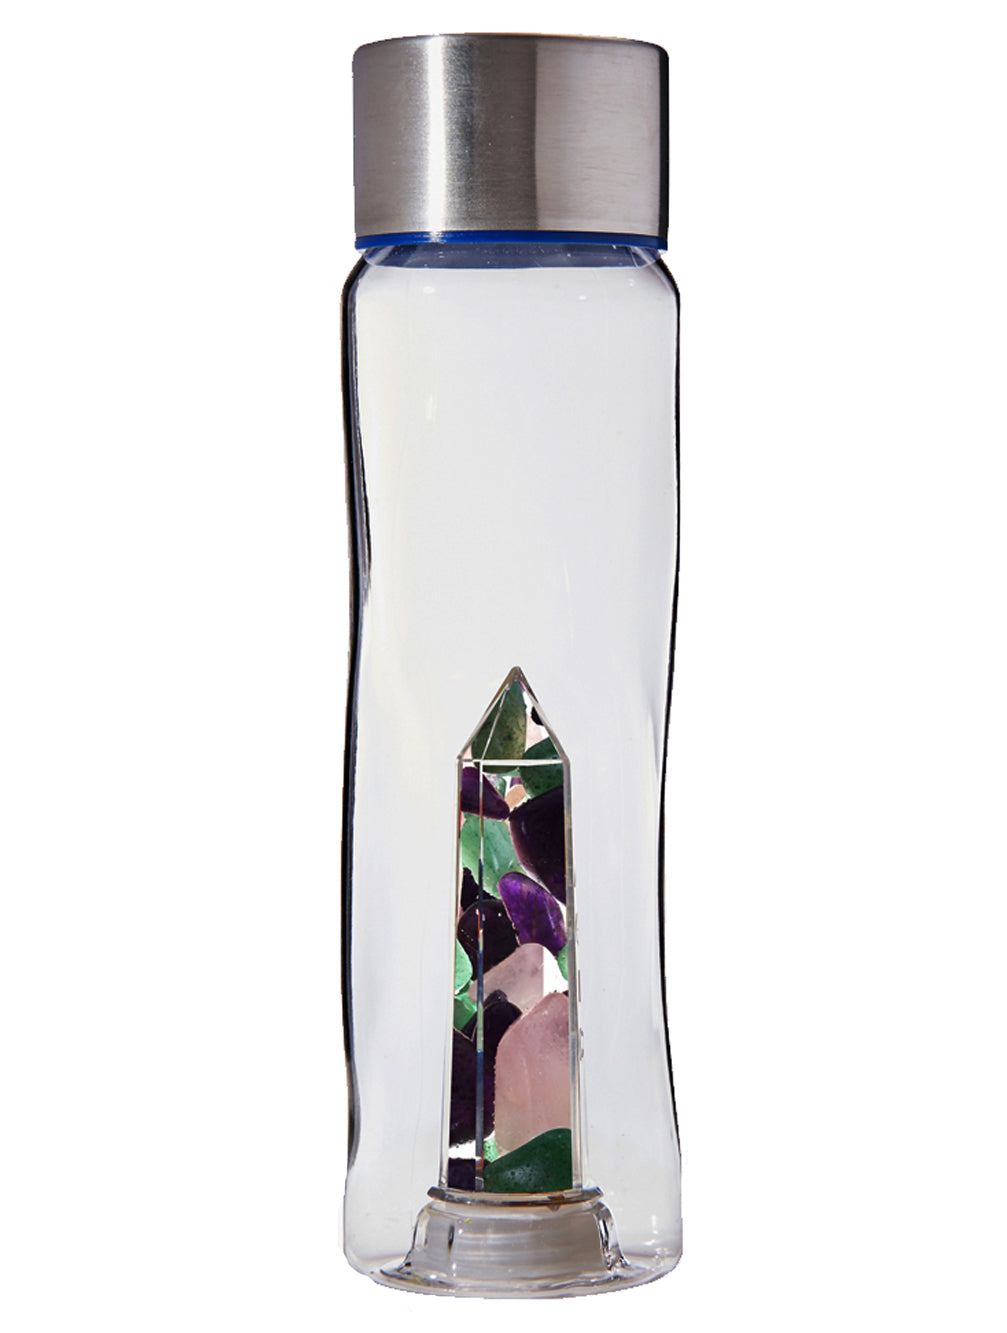 GLOW WATER BOTTLE - Kaia London